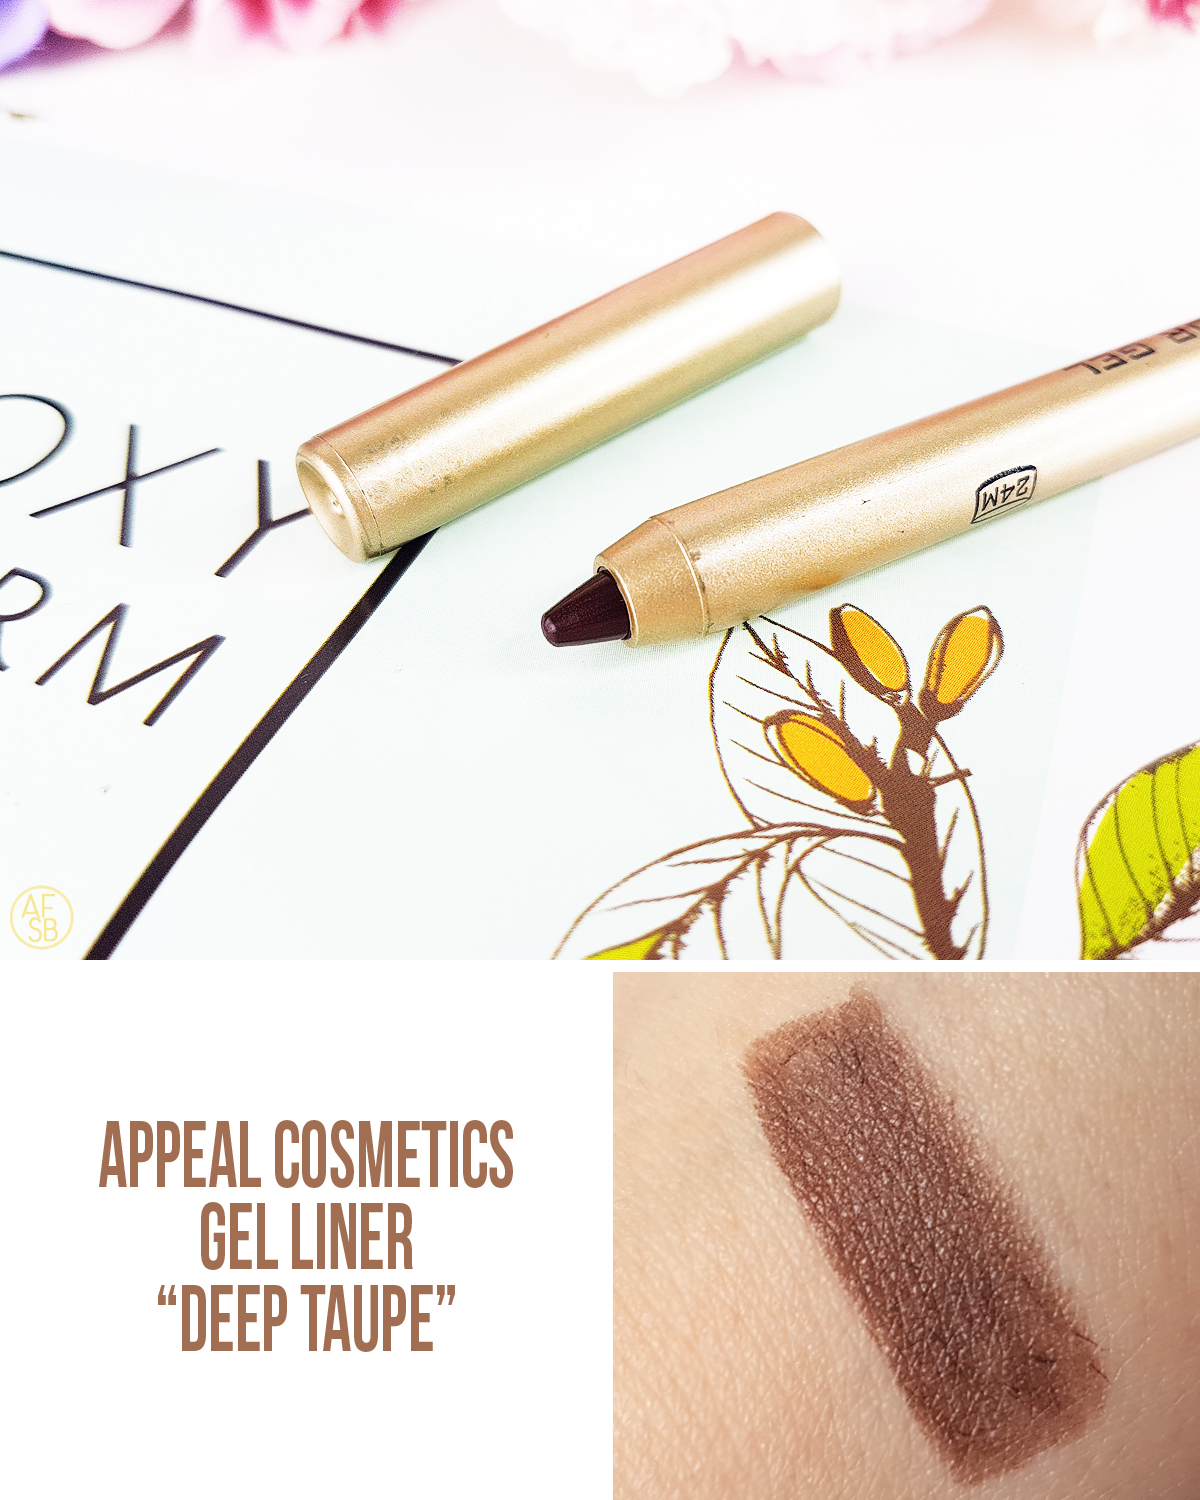 Boxycharm Juillet 2019 : Appeal - Gel Liner in Deep Taupe #beautybox